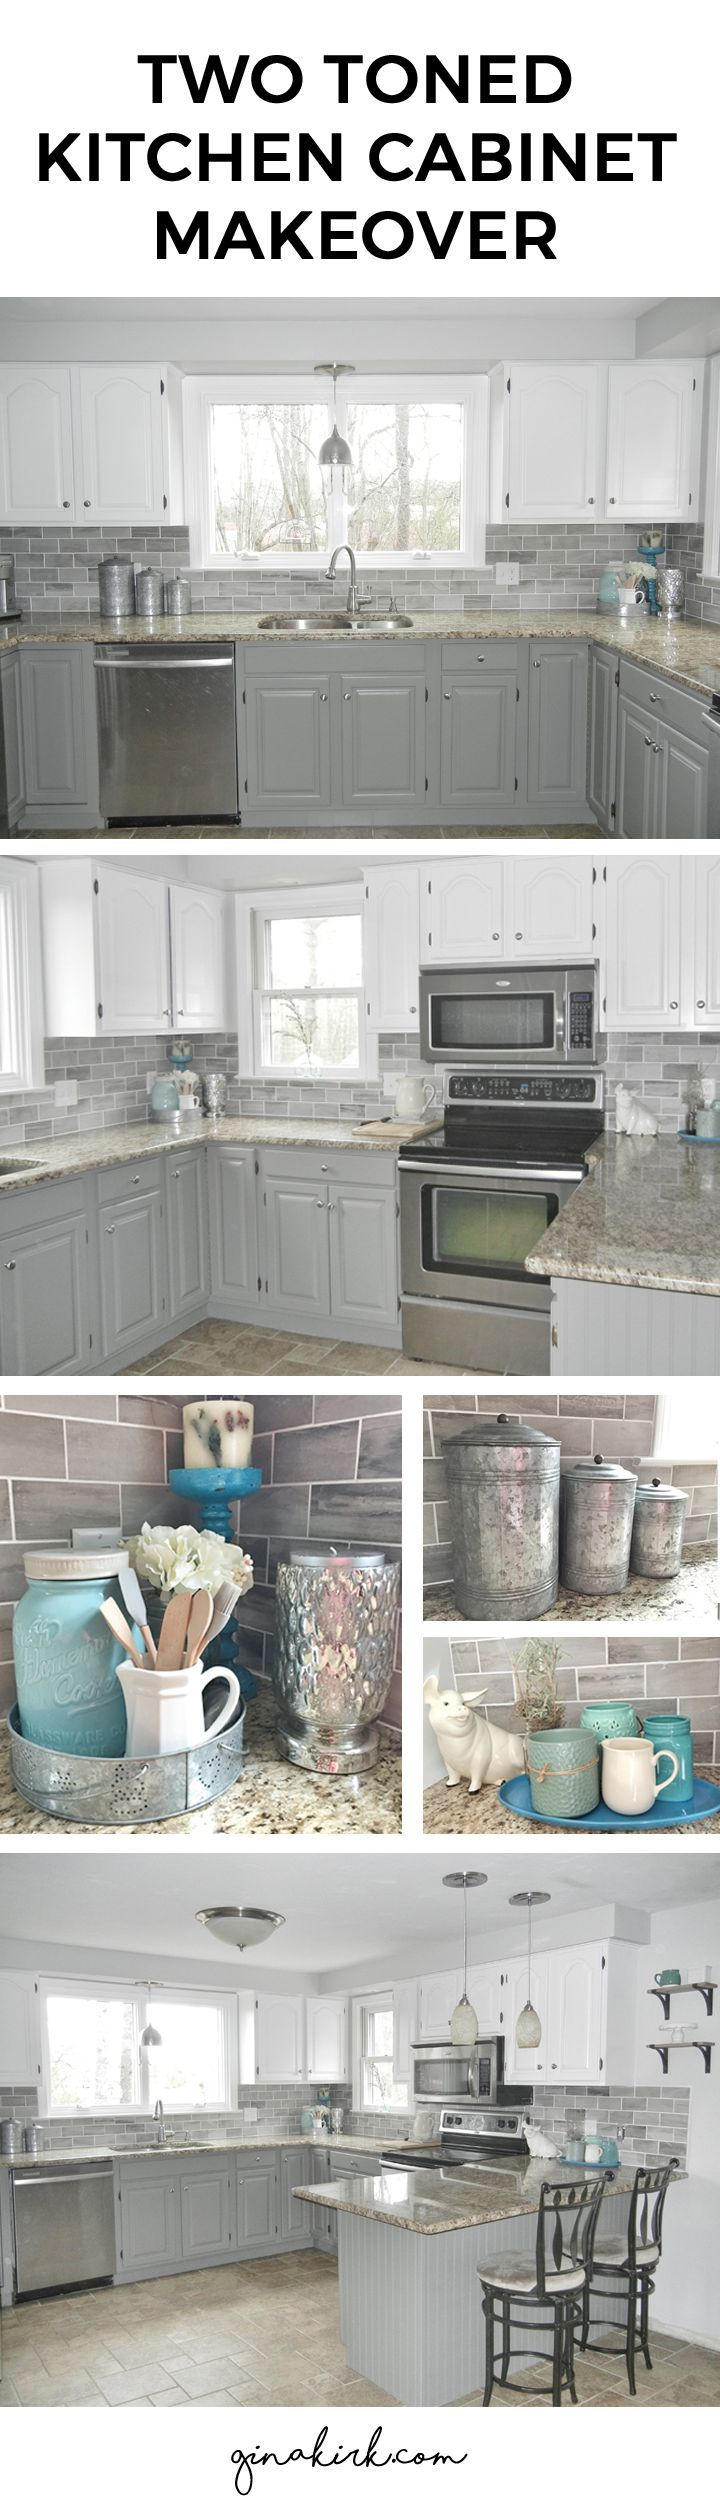 Our Oak Kitchen Makeover Kitchen Cabinets Kitchen Cabinets Makeover Home Remodeling